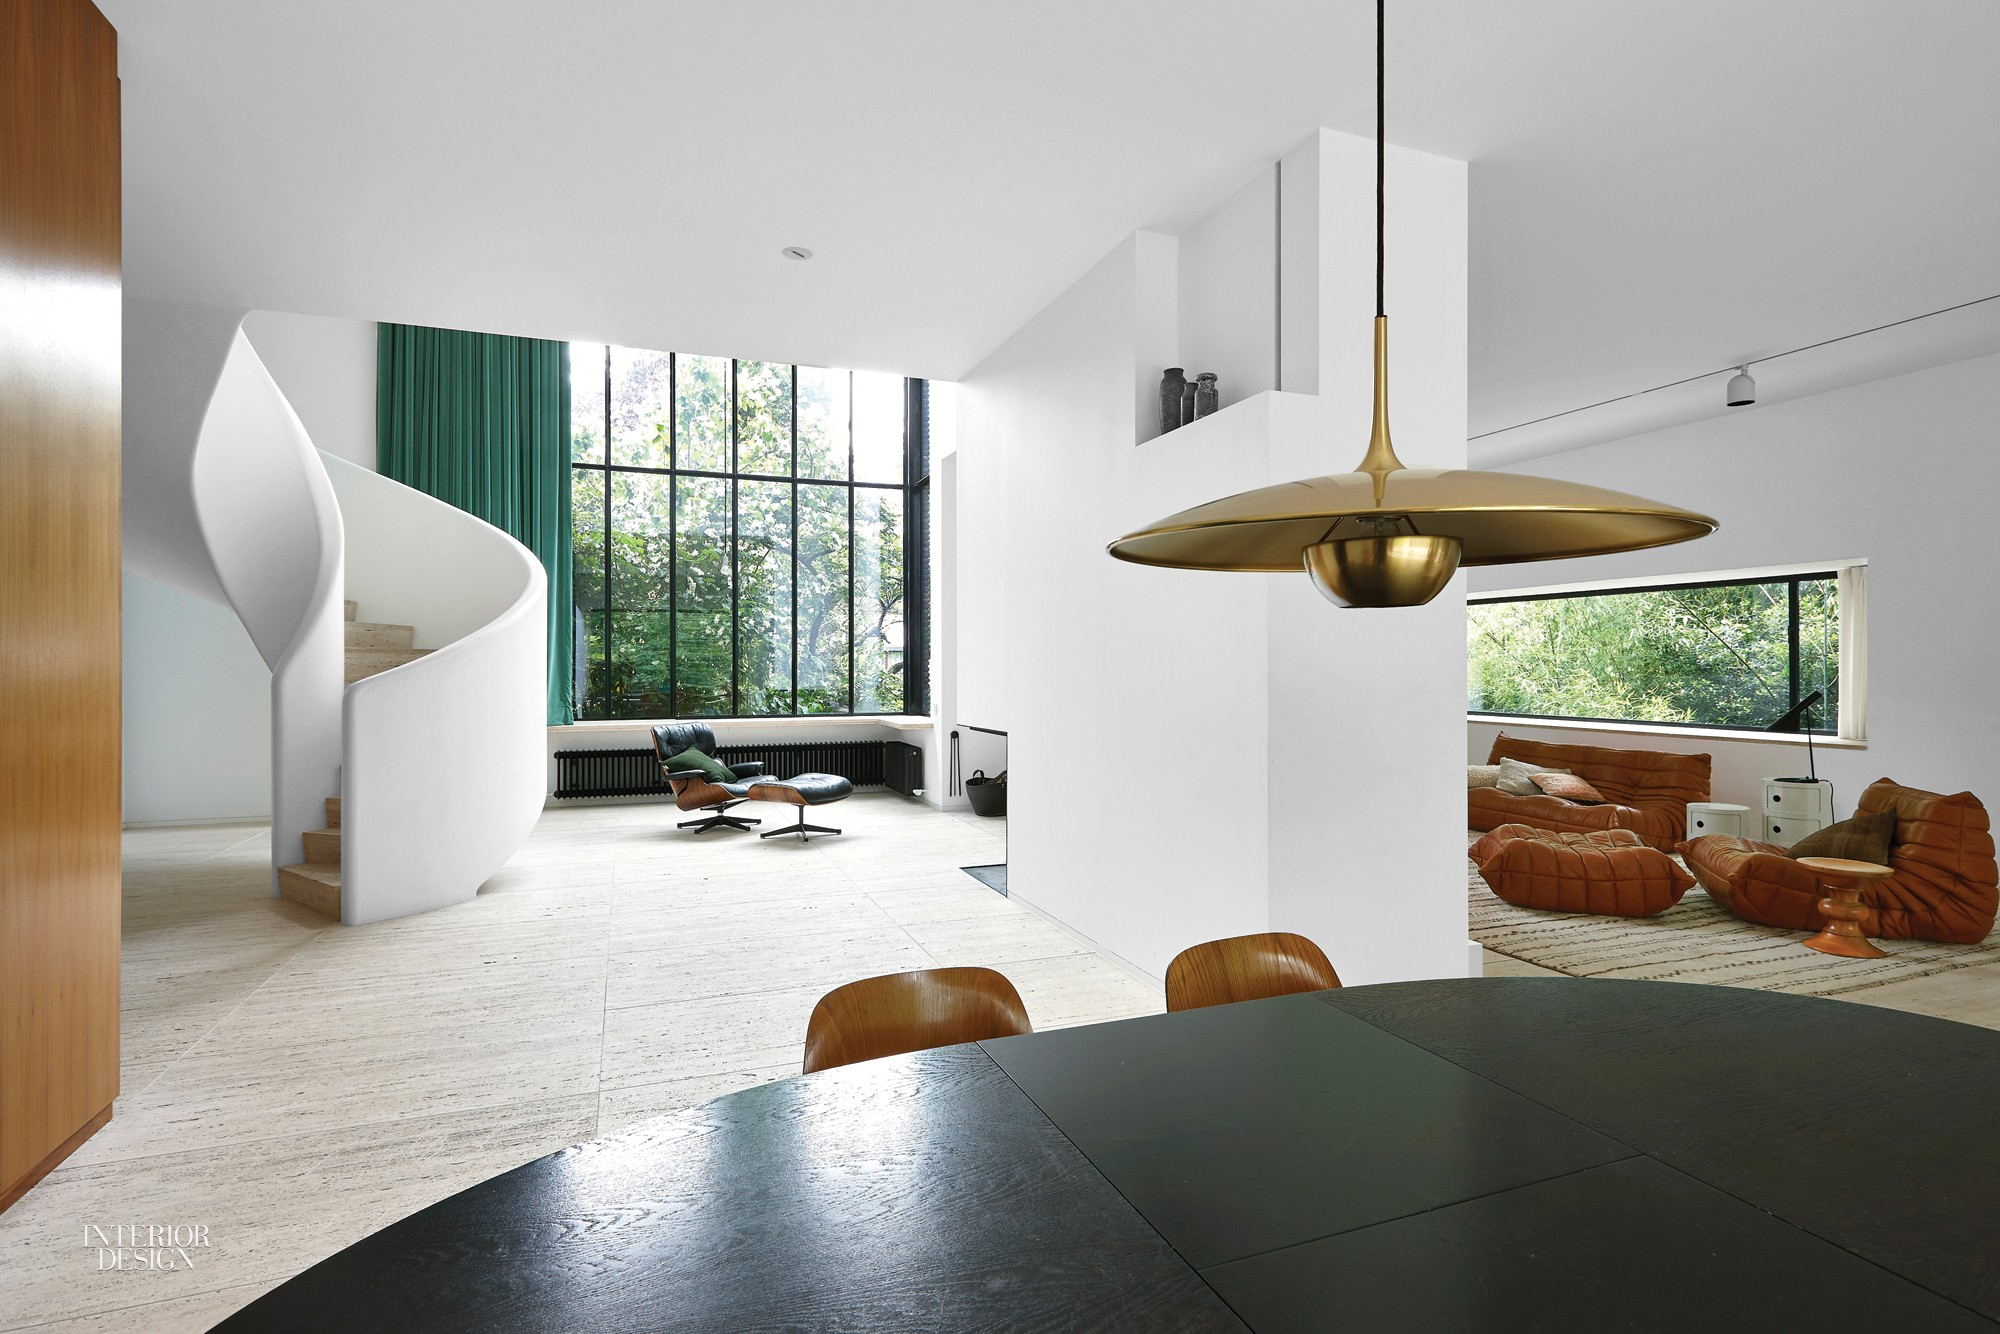 Beau Florian Schulz Designed The Pendant Fixture Over The Dining Table.  Photography By Jan Verlinde.